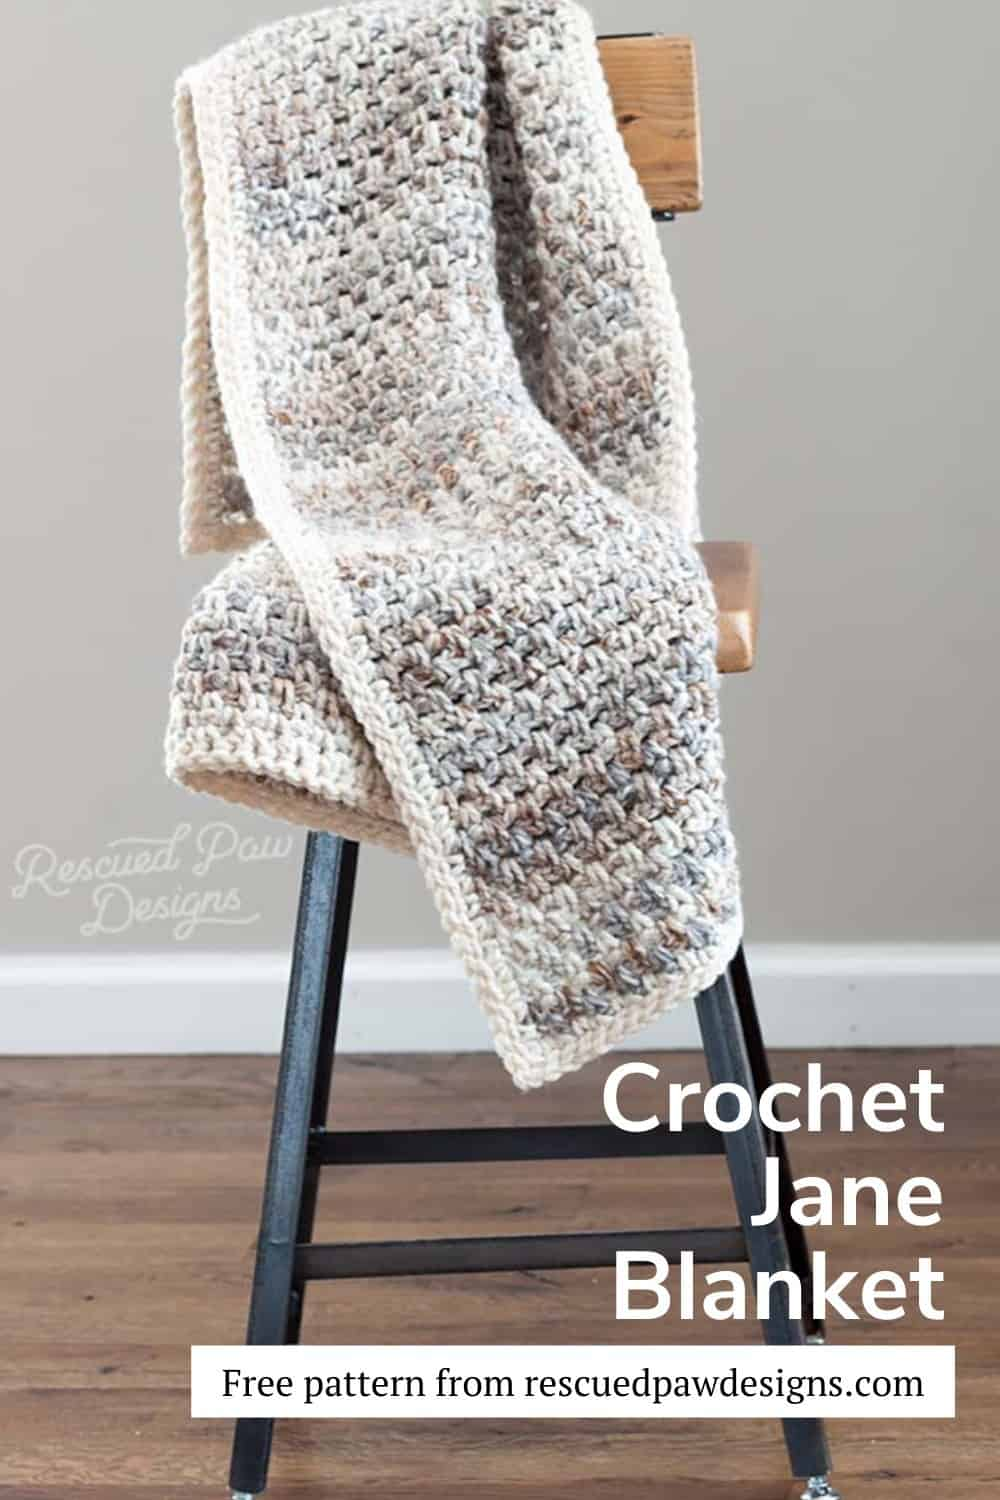 Free Crochet Blanket Pattern: The Jane a free pattern from easycrochet.com via @easycrochetcom